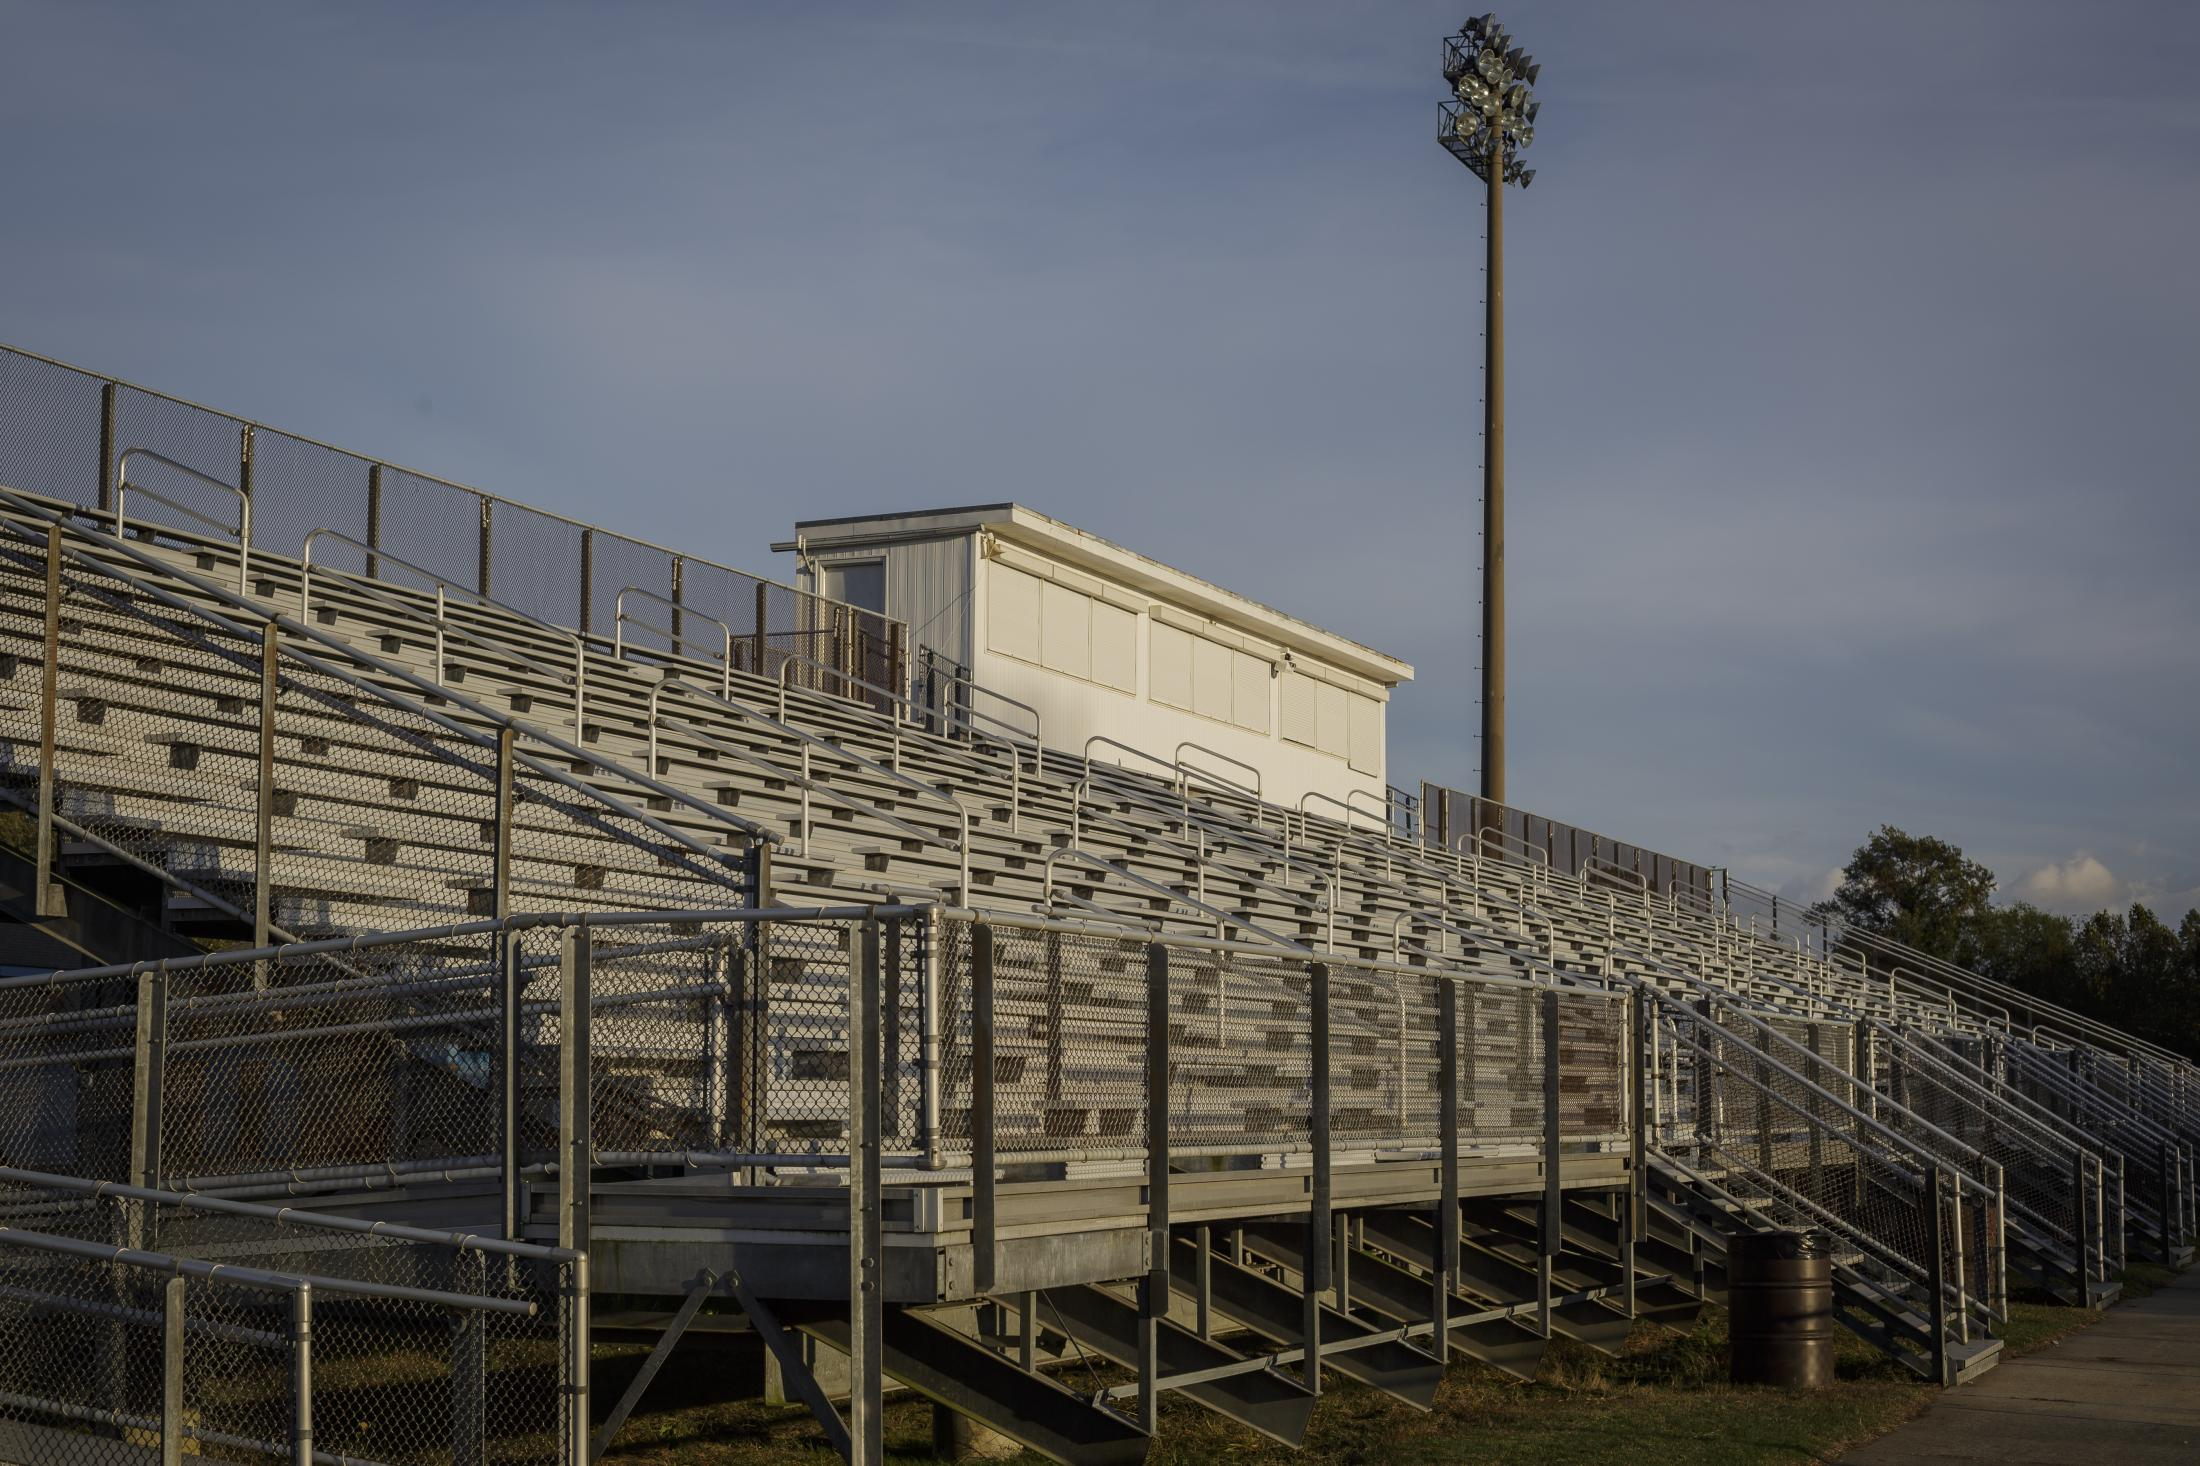 NORFOLK, VA – October 29, 2020: Detail of the empty stairs during a football practice at Lake Taylor High School. Due to the COVID-19 pandemic, football games were canceled at Lake Taylor High School in Norfolk, VA, leaving the TITANS members with plenty of free time. Carlos Bernate / The Undefeated